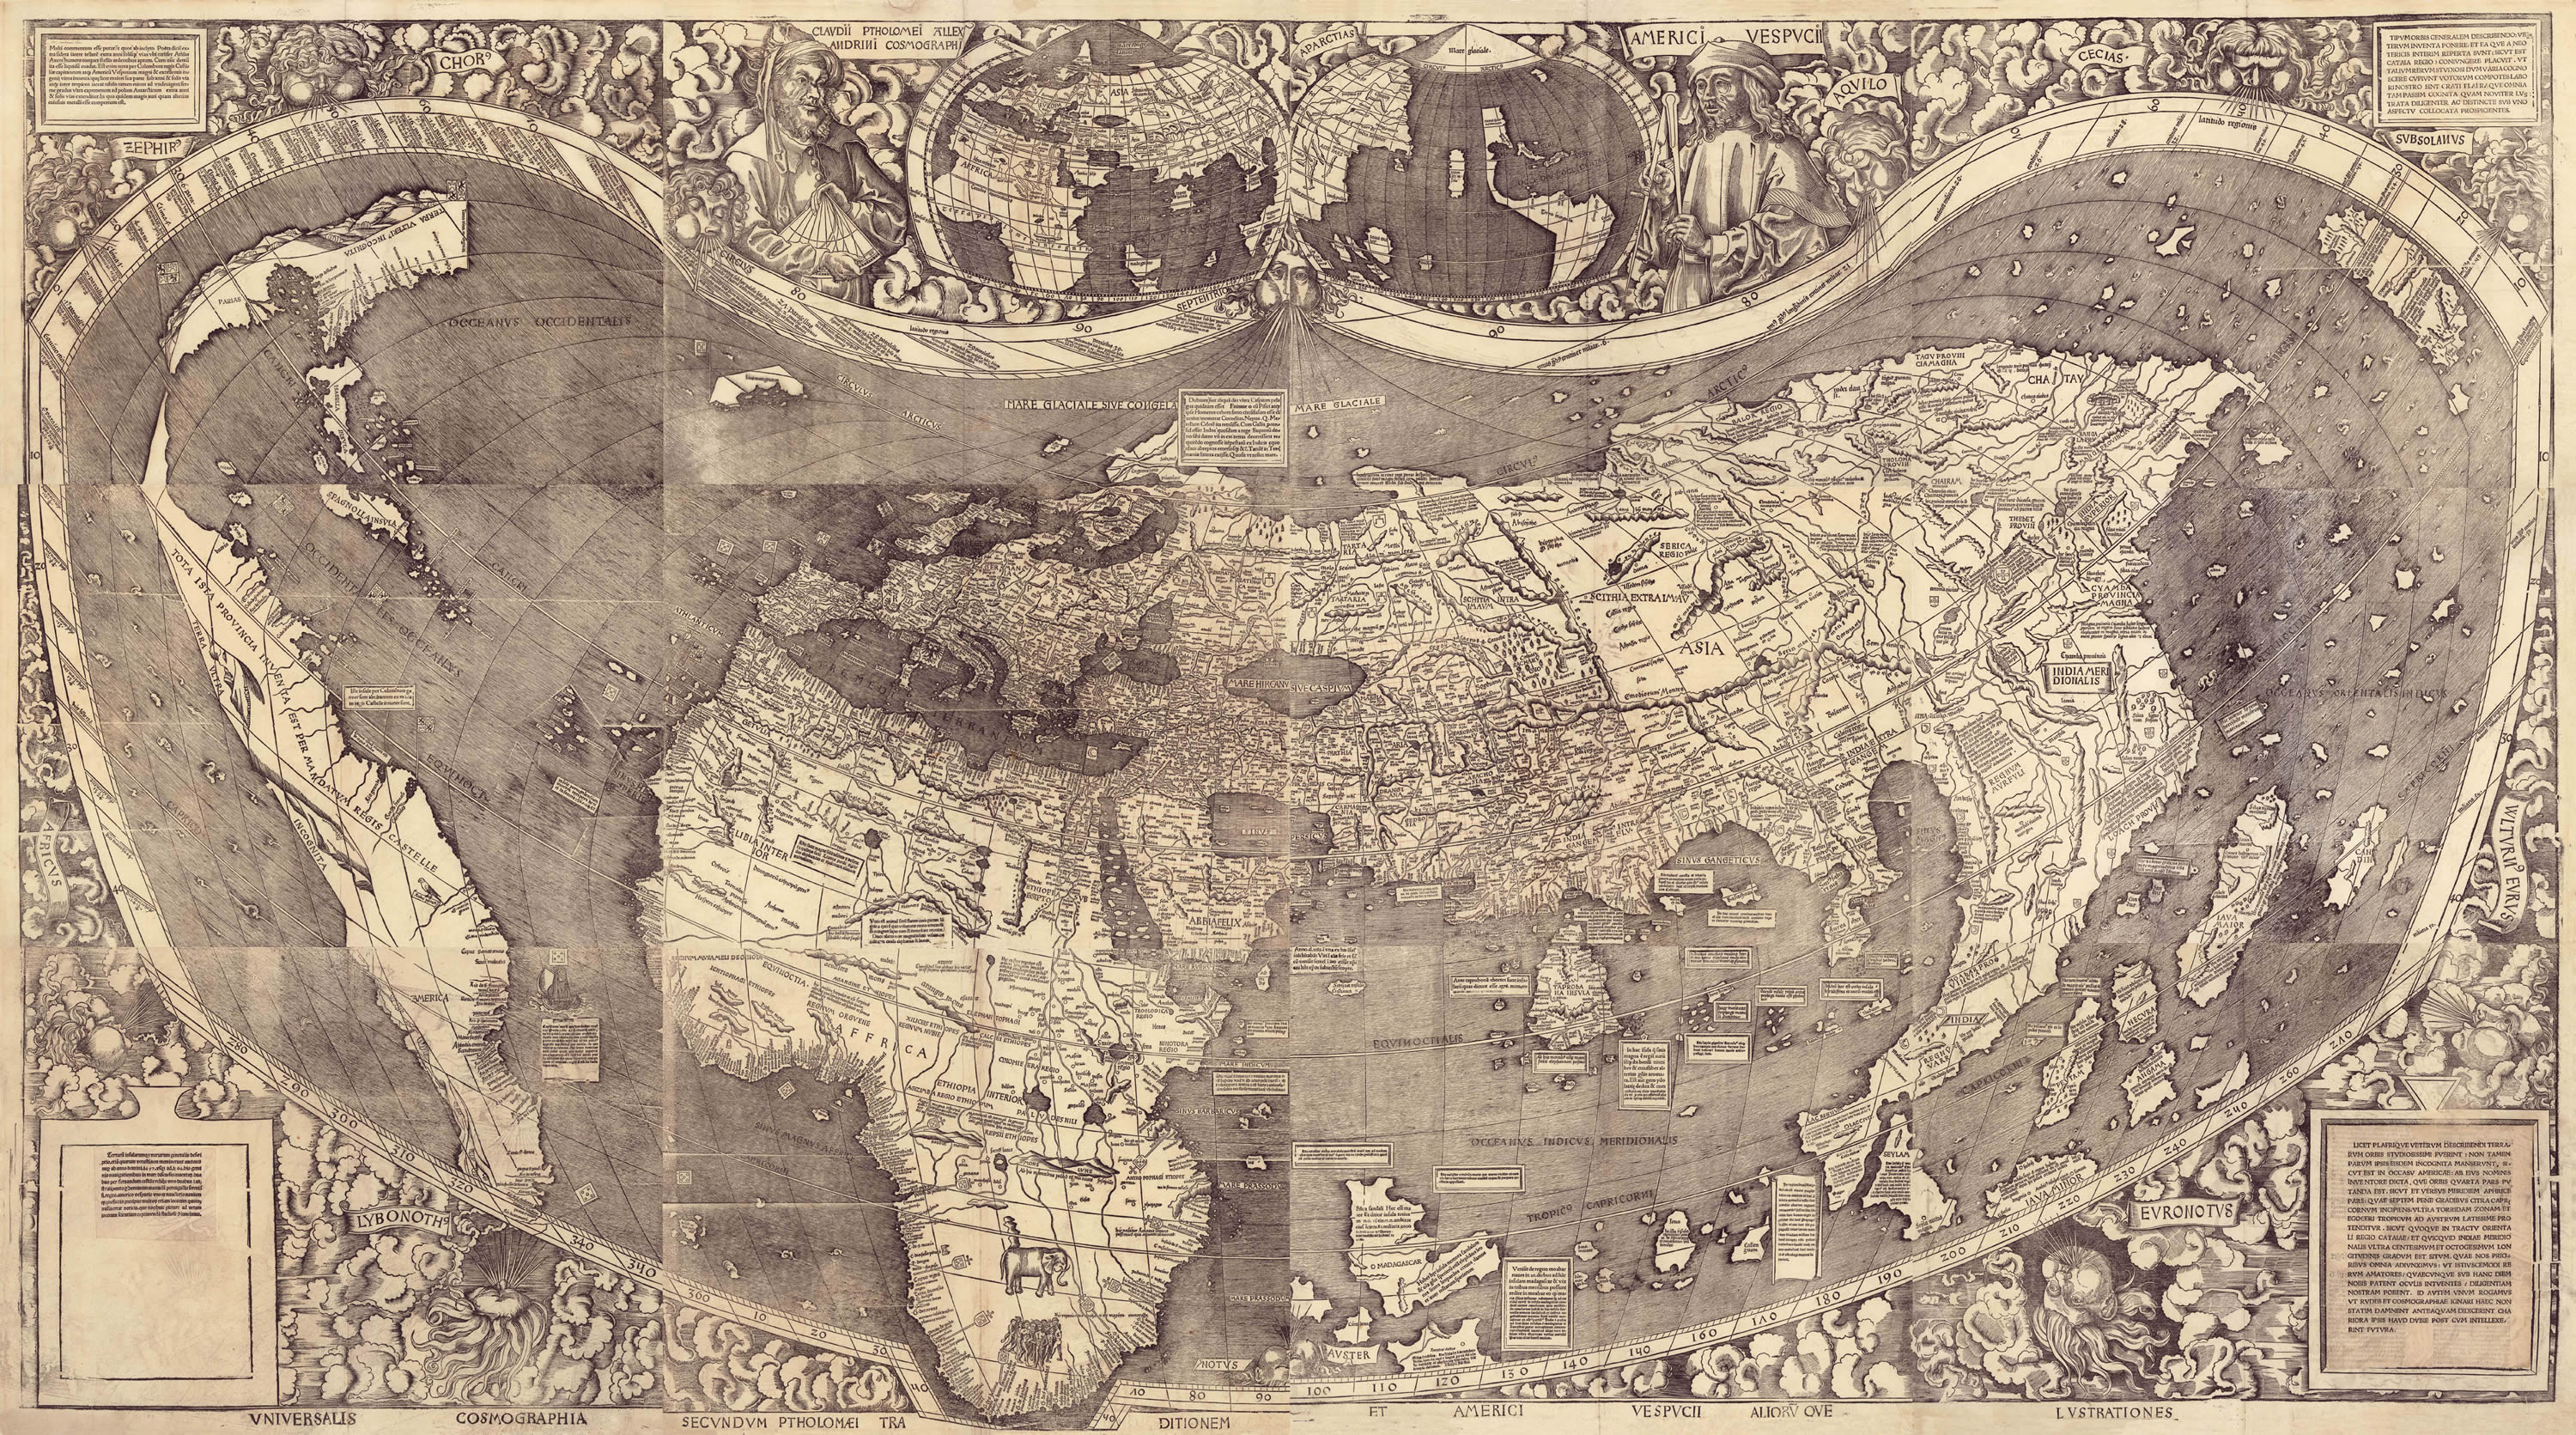 8 remarkable early maps history lists the waldseemller world map 1507 credit heritage images getty images gumiabroncs Image collections